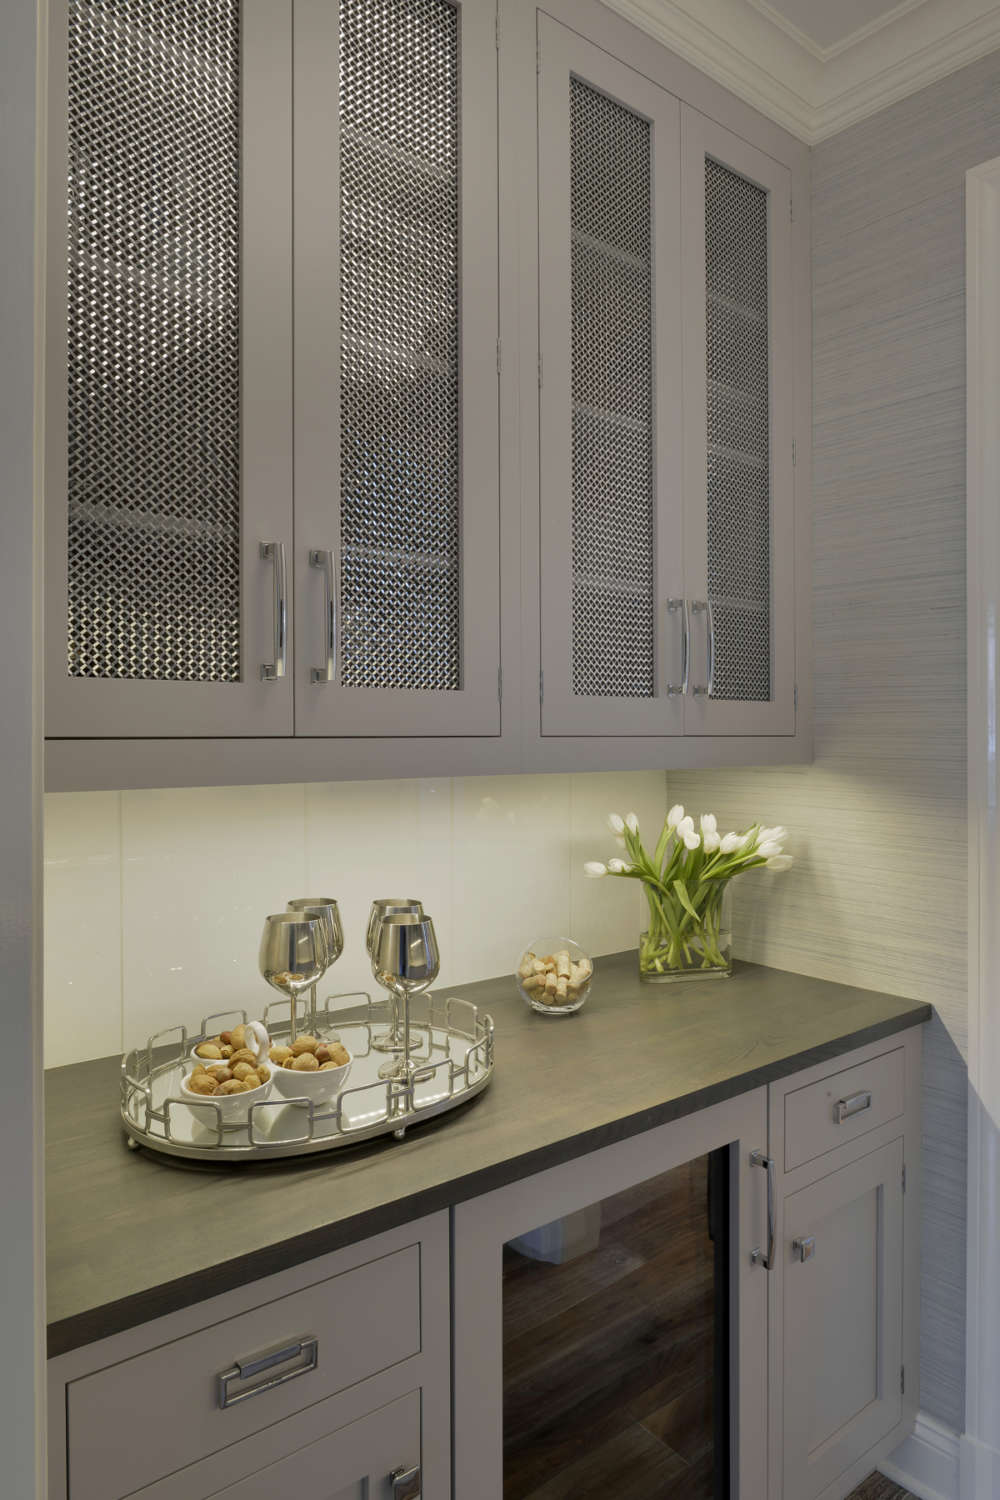 Butler's pantry features shaker style, light grey painted Biotta cabinetry with metal door inserts and brushed stainless hardware, grey walls, espresso countertops and a beverage refrigerator. Design by Randy O'Kane, CKD, of Bilotta kitchens.